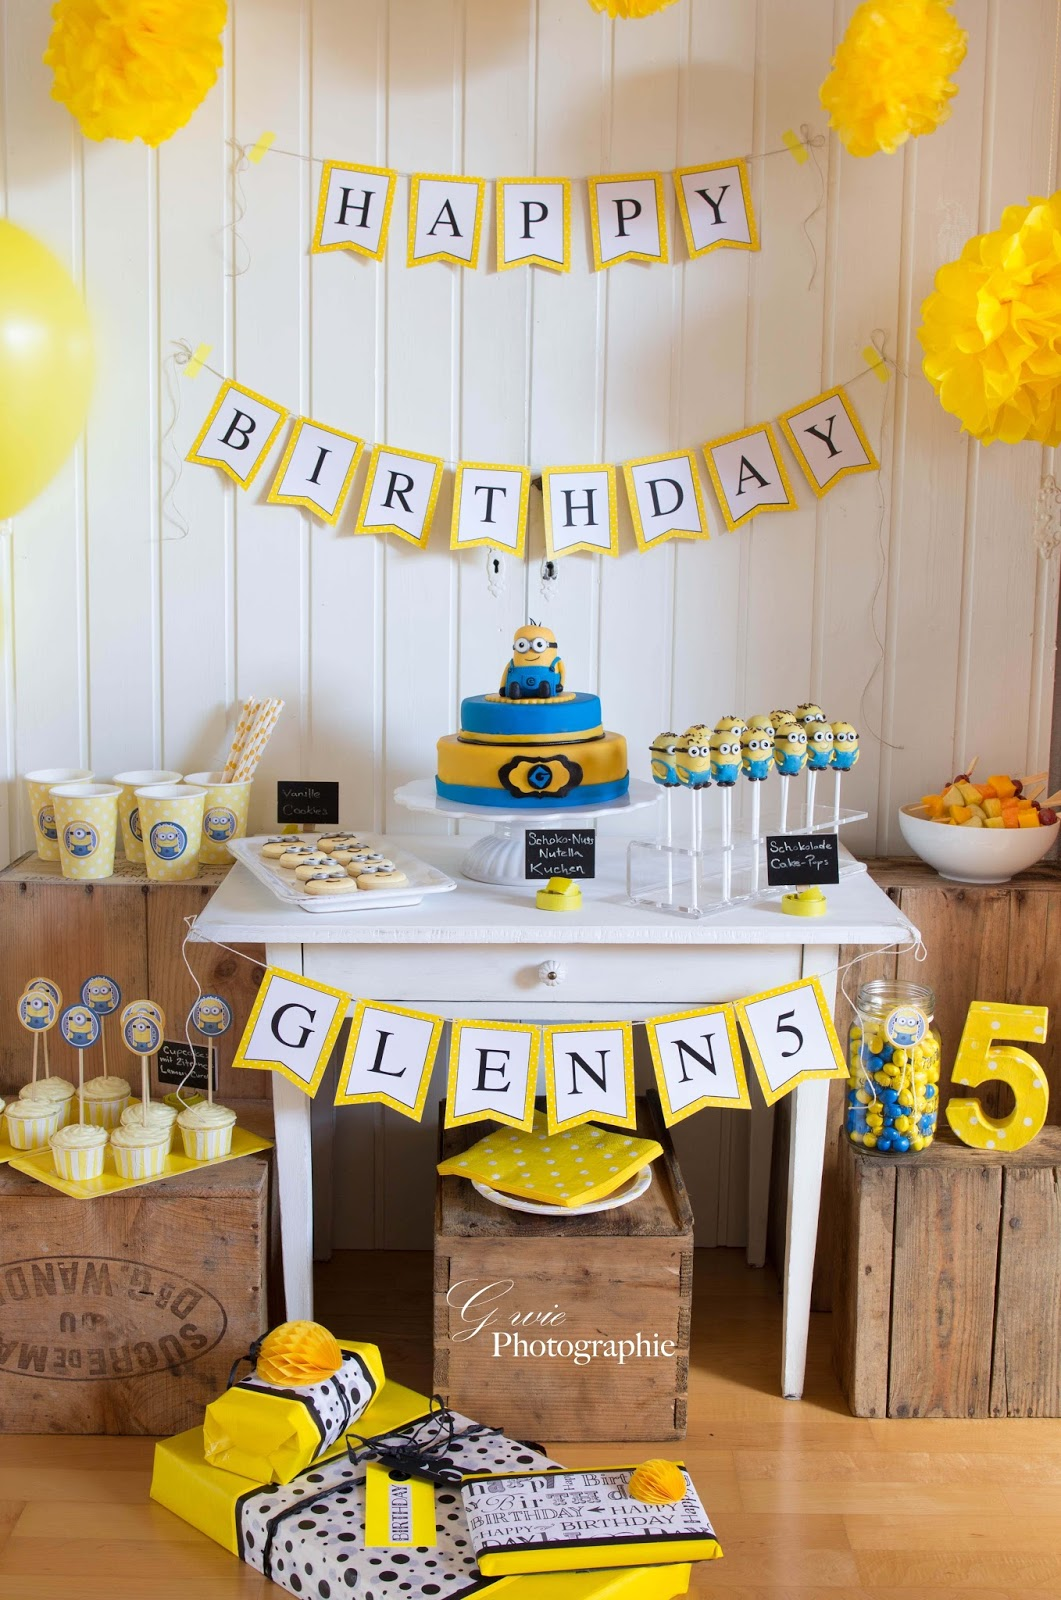 G wie 5 geburtstag glenn minions sweet table for Geburtstagsparty deko